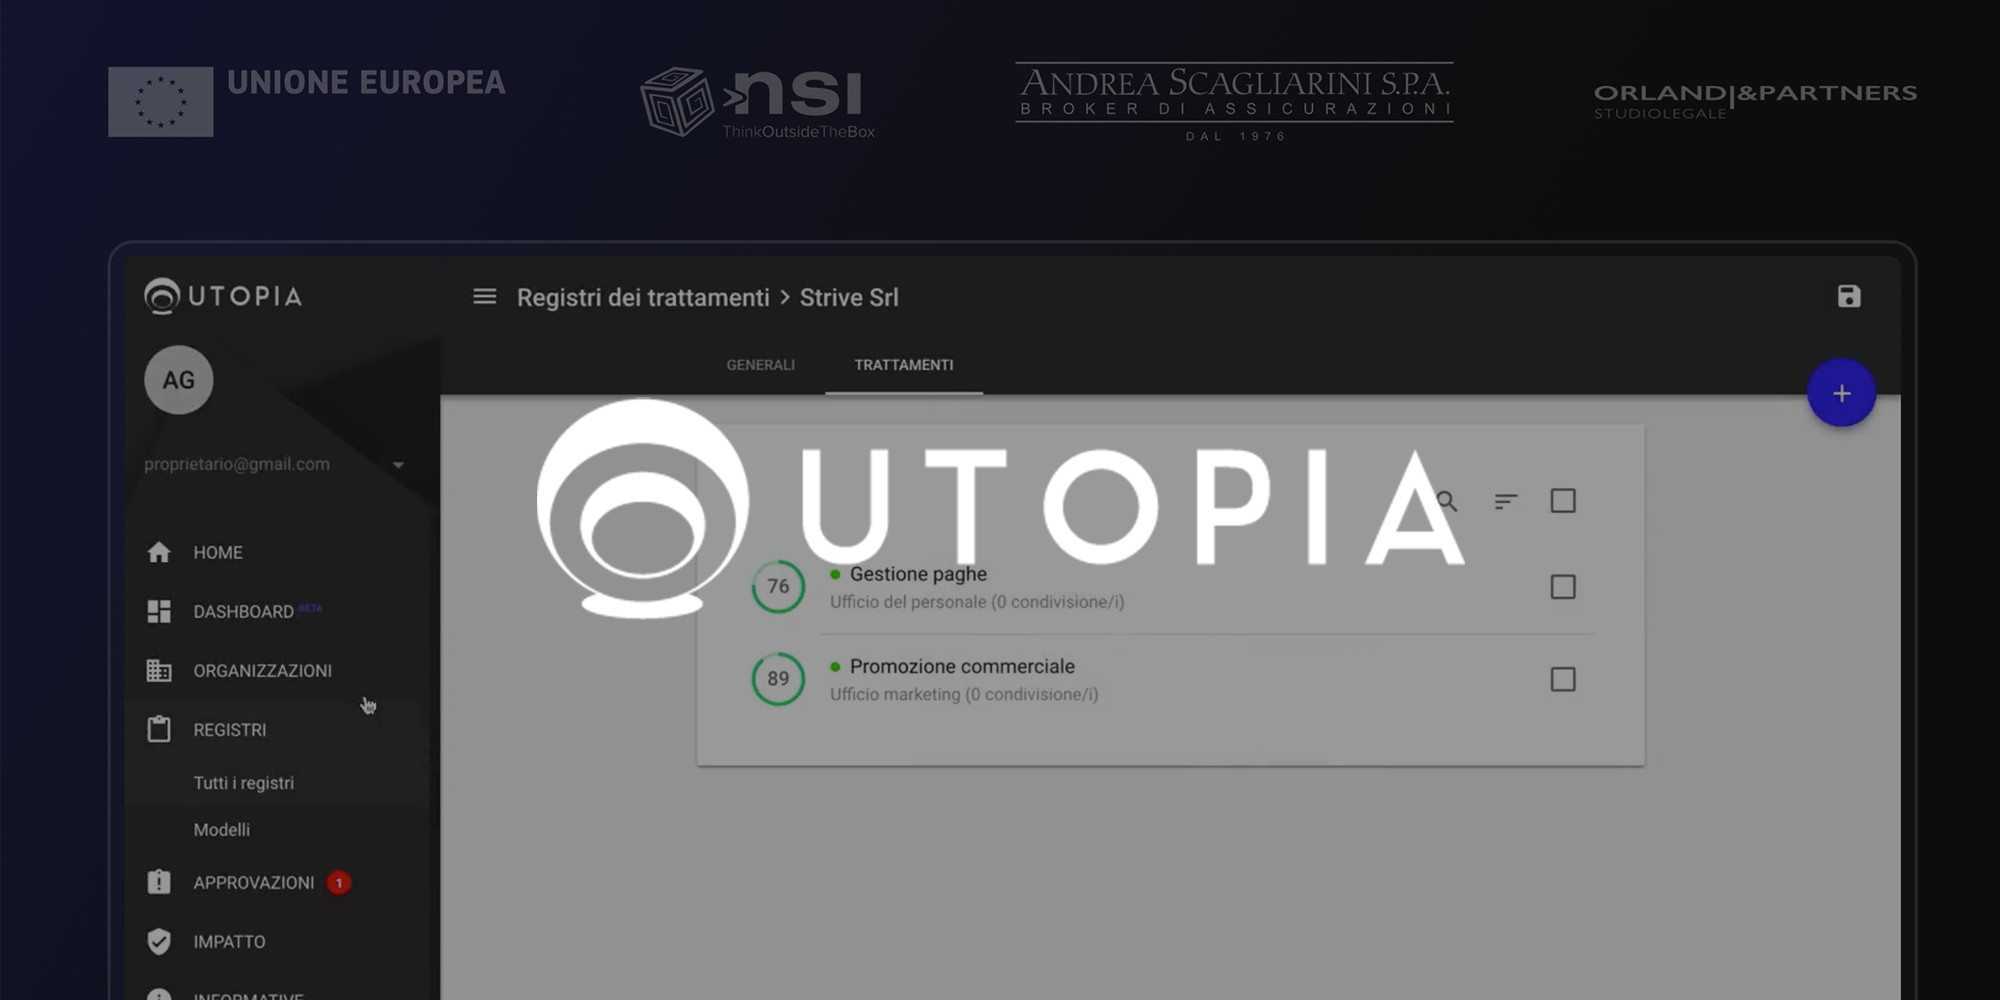 UTOPIA, GDPR Privacy Software